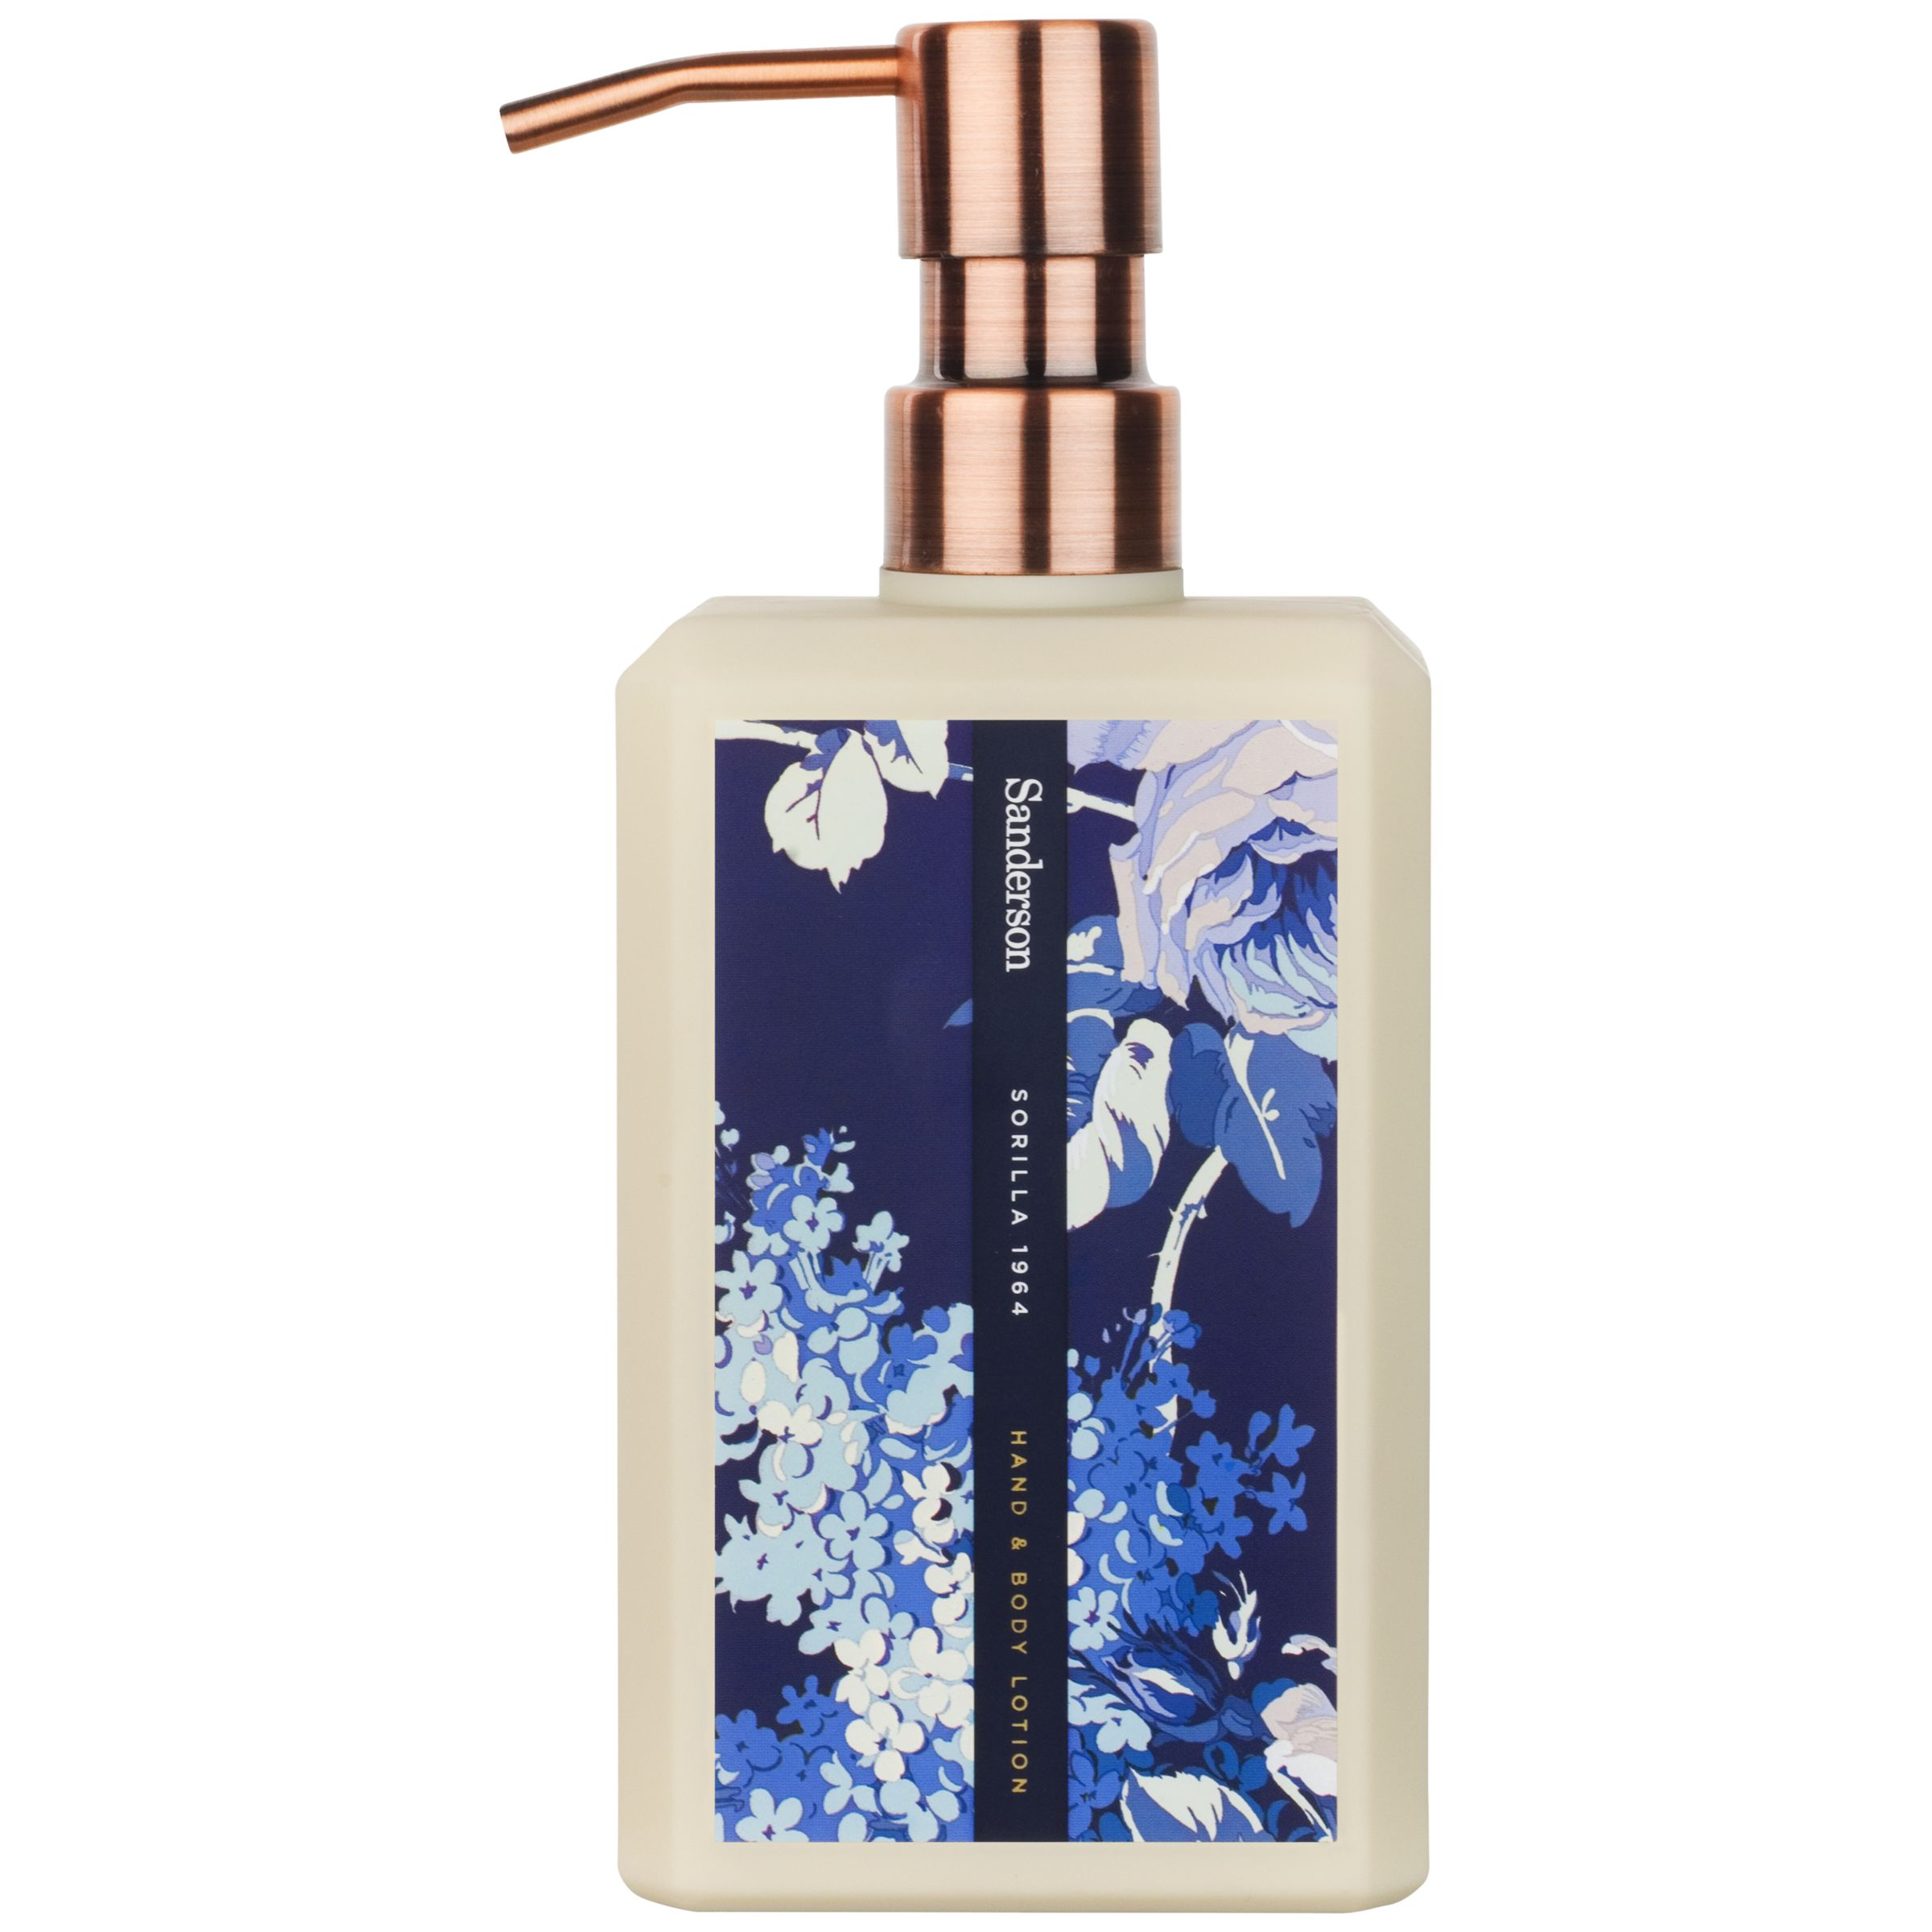 Sanderson Sanderson Sorilla 1964 Scented Hand & Body Lotion, 390ml